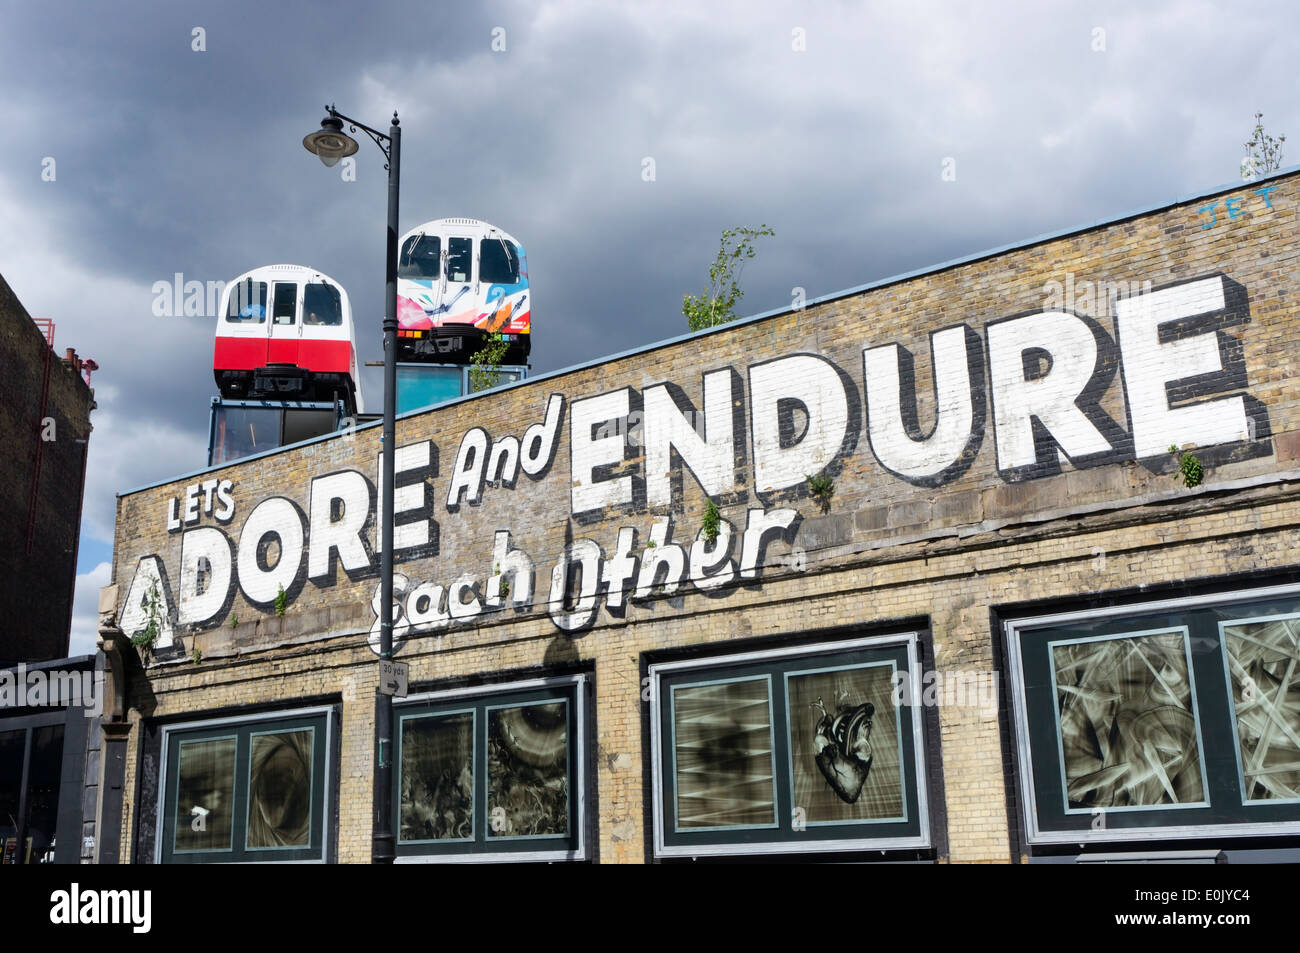 'Lets Adore and Endure Each Other' graffiti in Great Eastern Street, London. - Stock Image